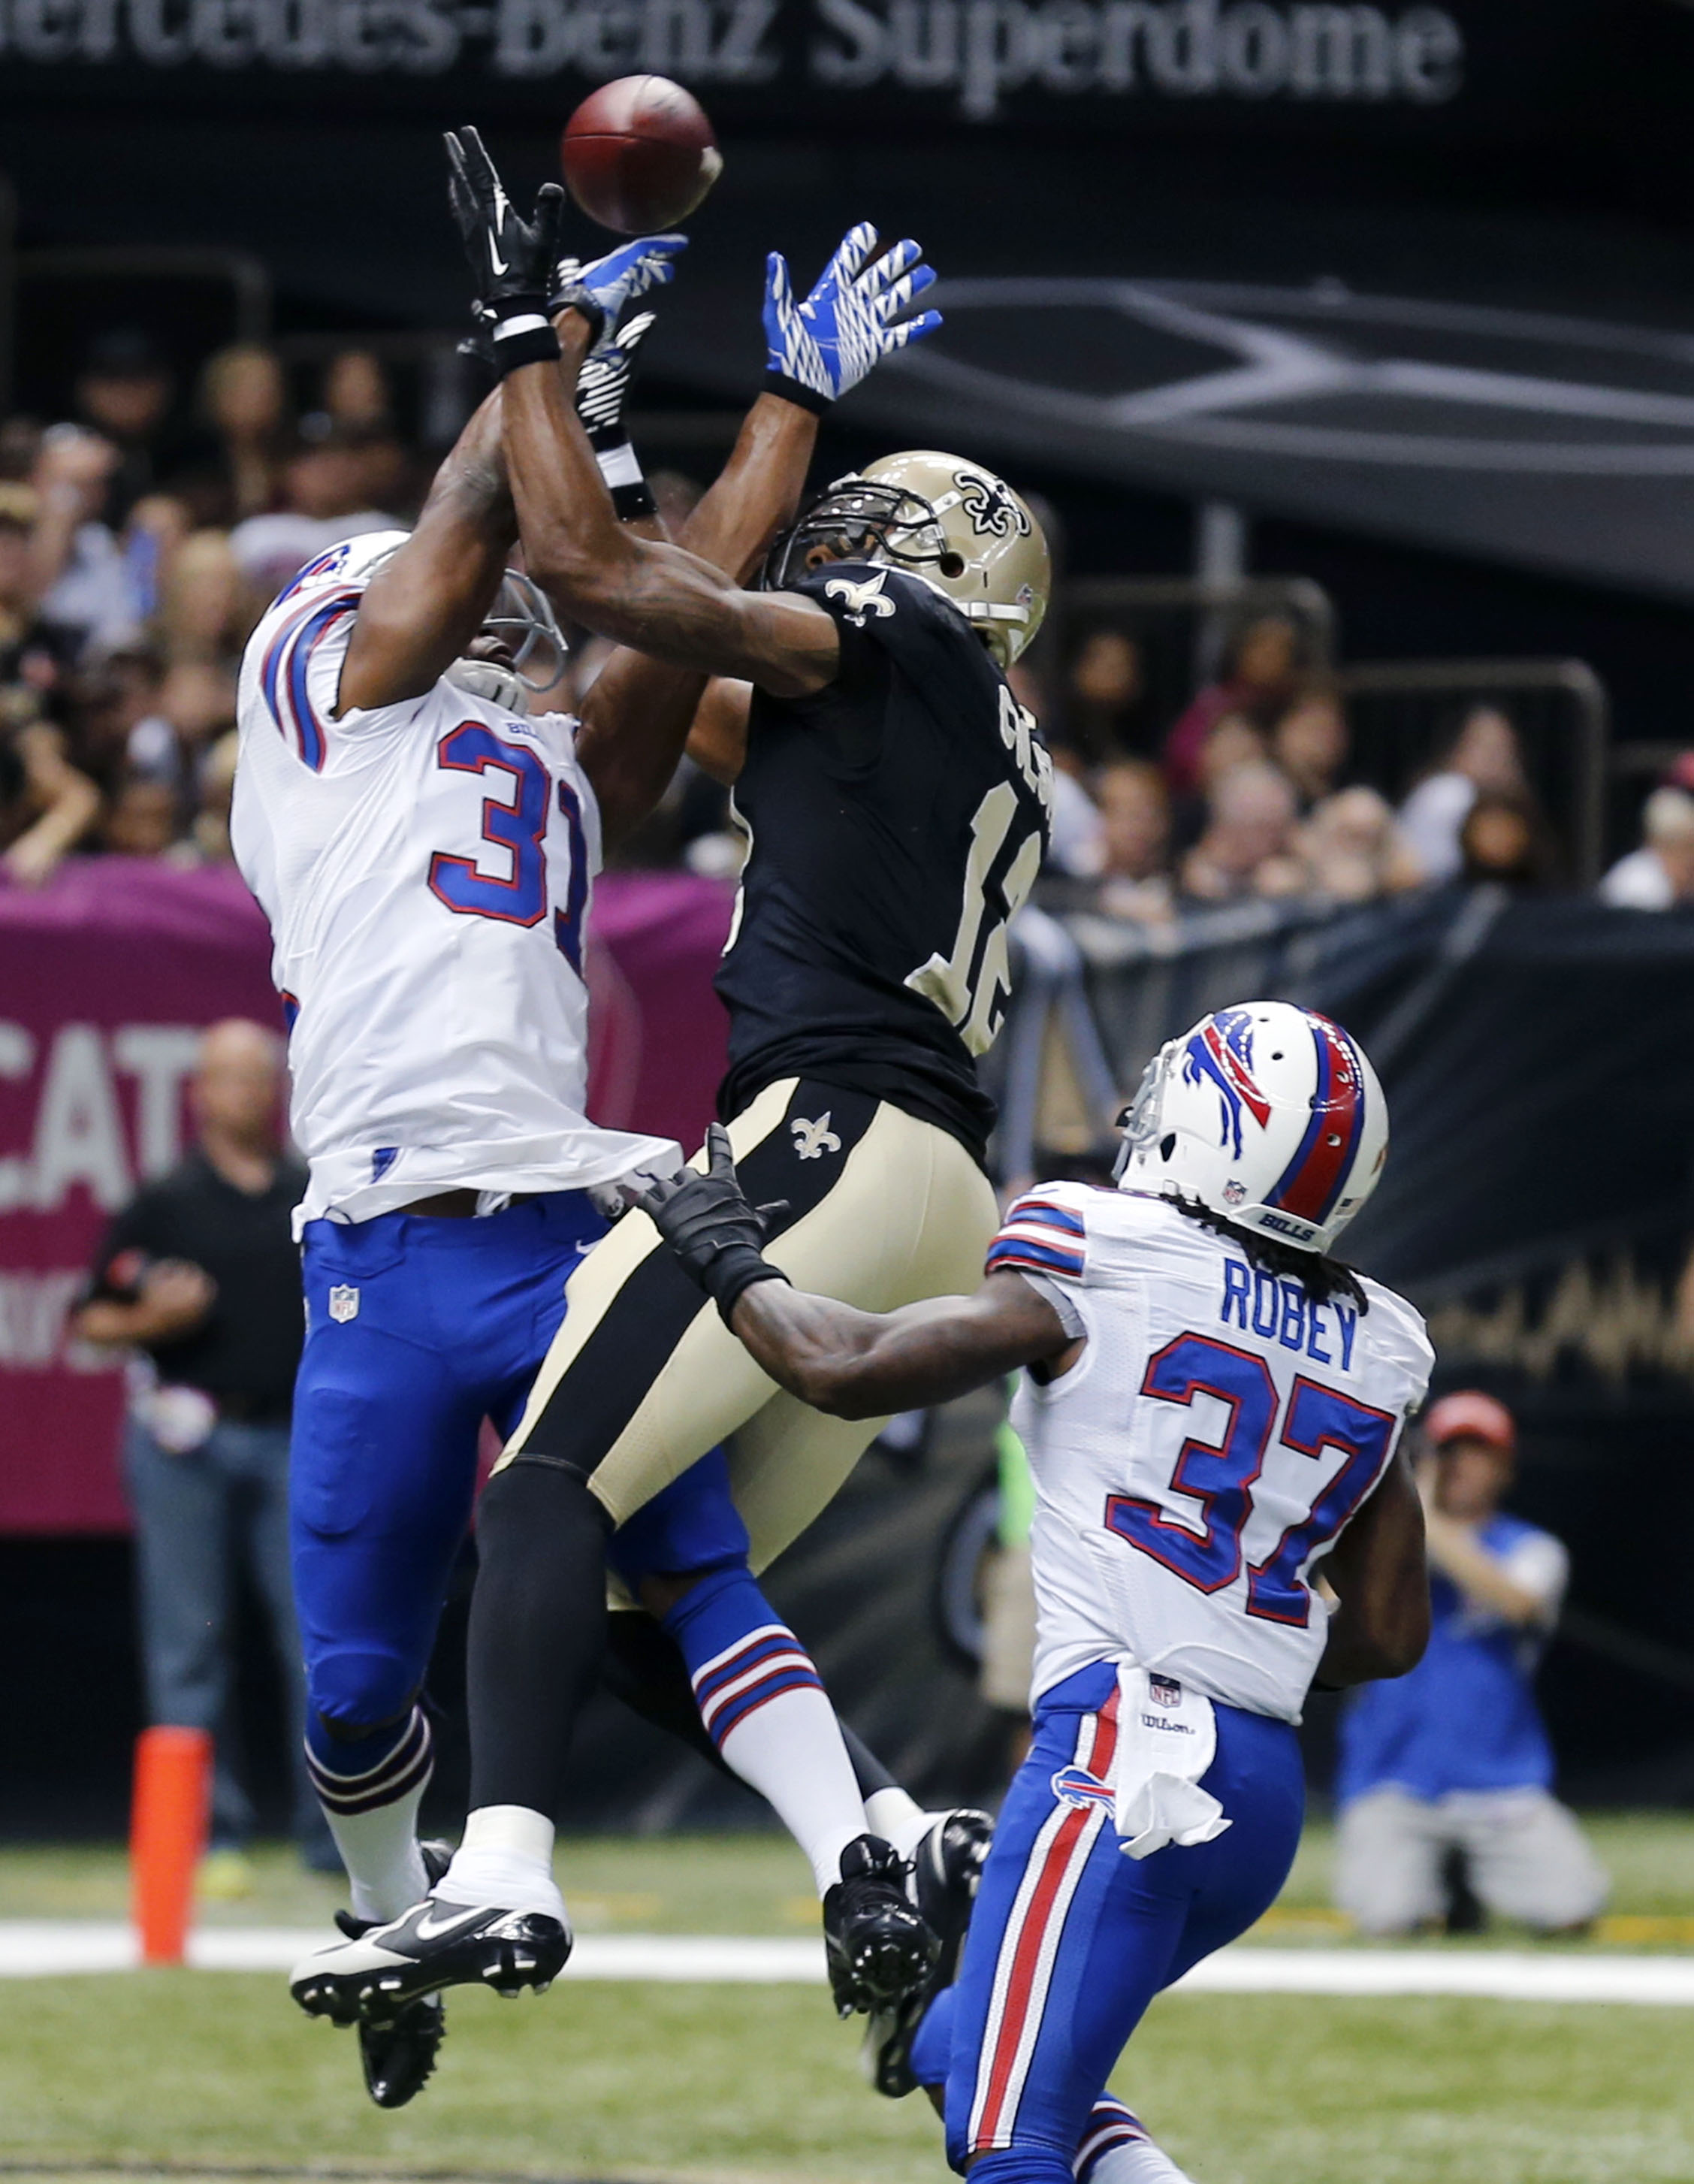 Saints' WR Colston, LB Vilma uncertain vs. Jets